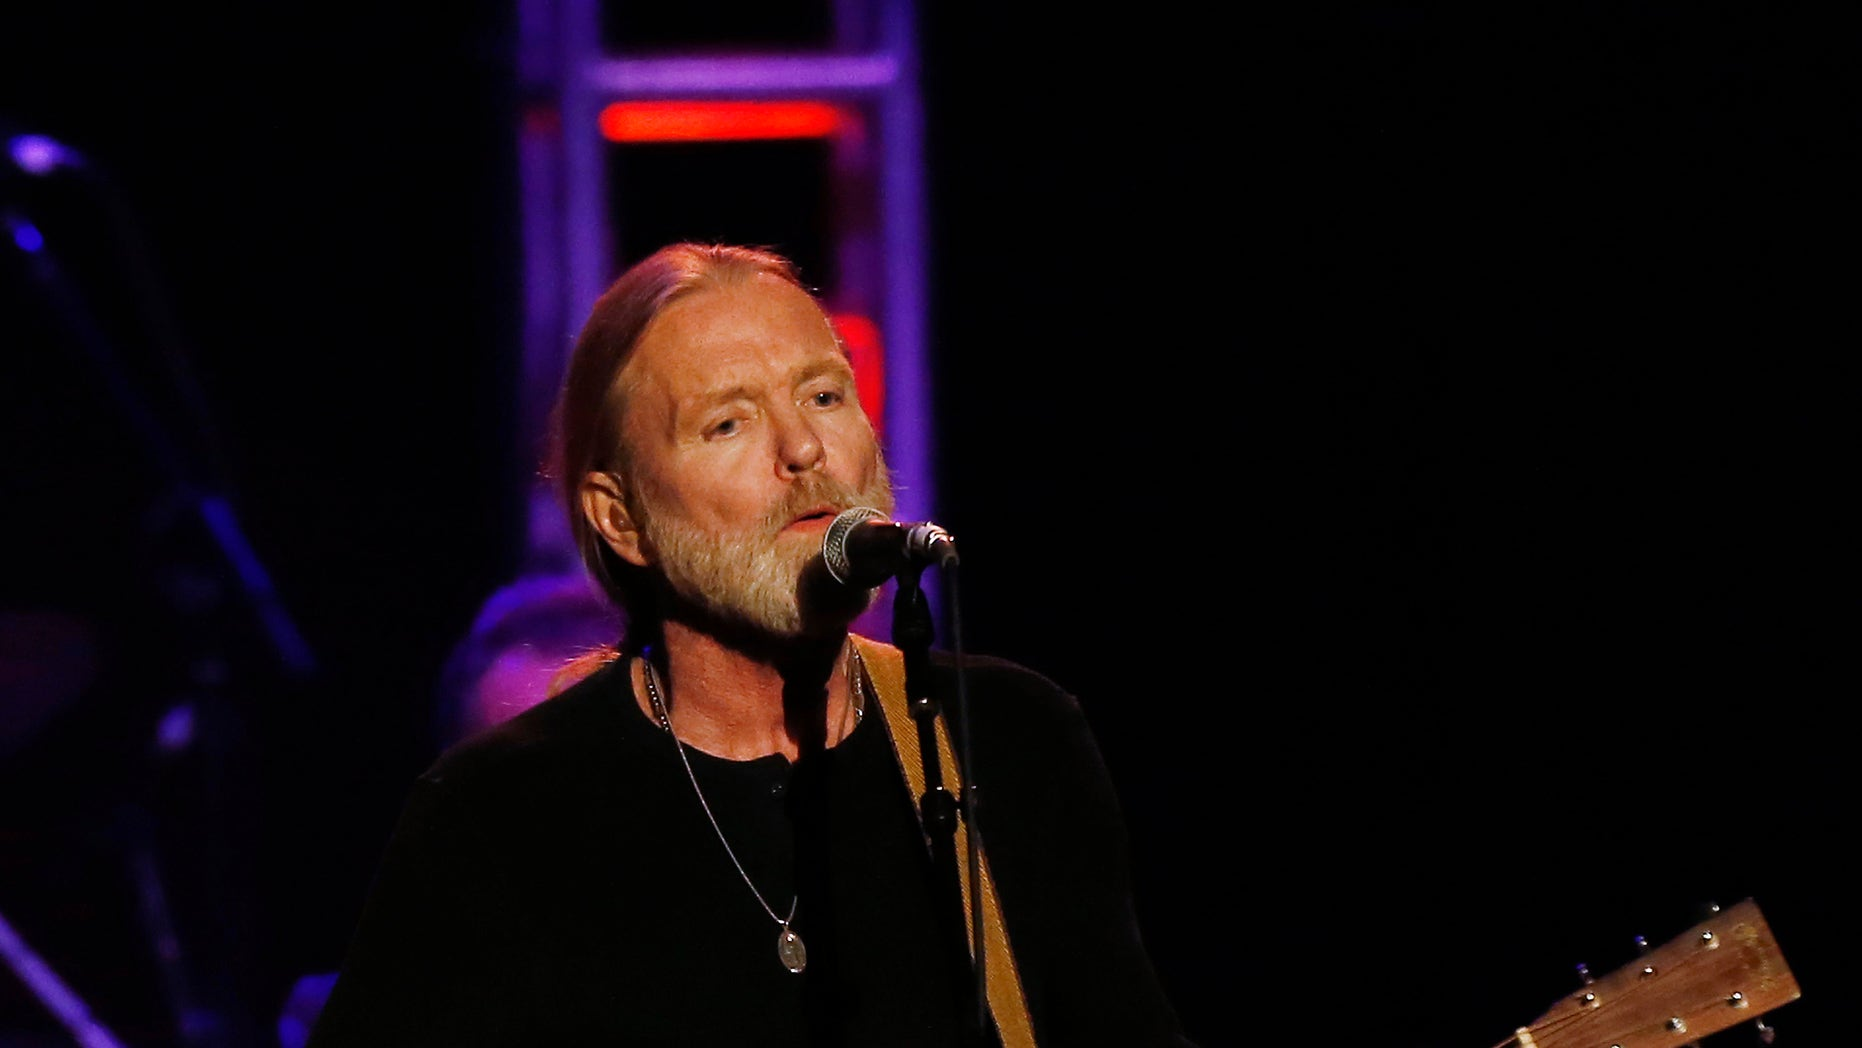 """October 3, 2012. Musician Gregg Allman performs during the """"Love for Levon"""" charity event at the Izod Center in East Rutherford, New Jersey."""